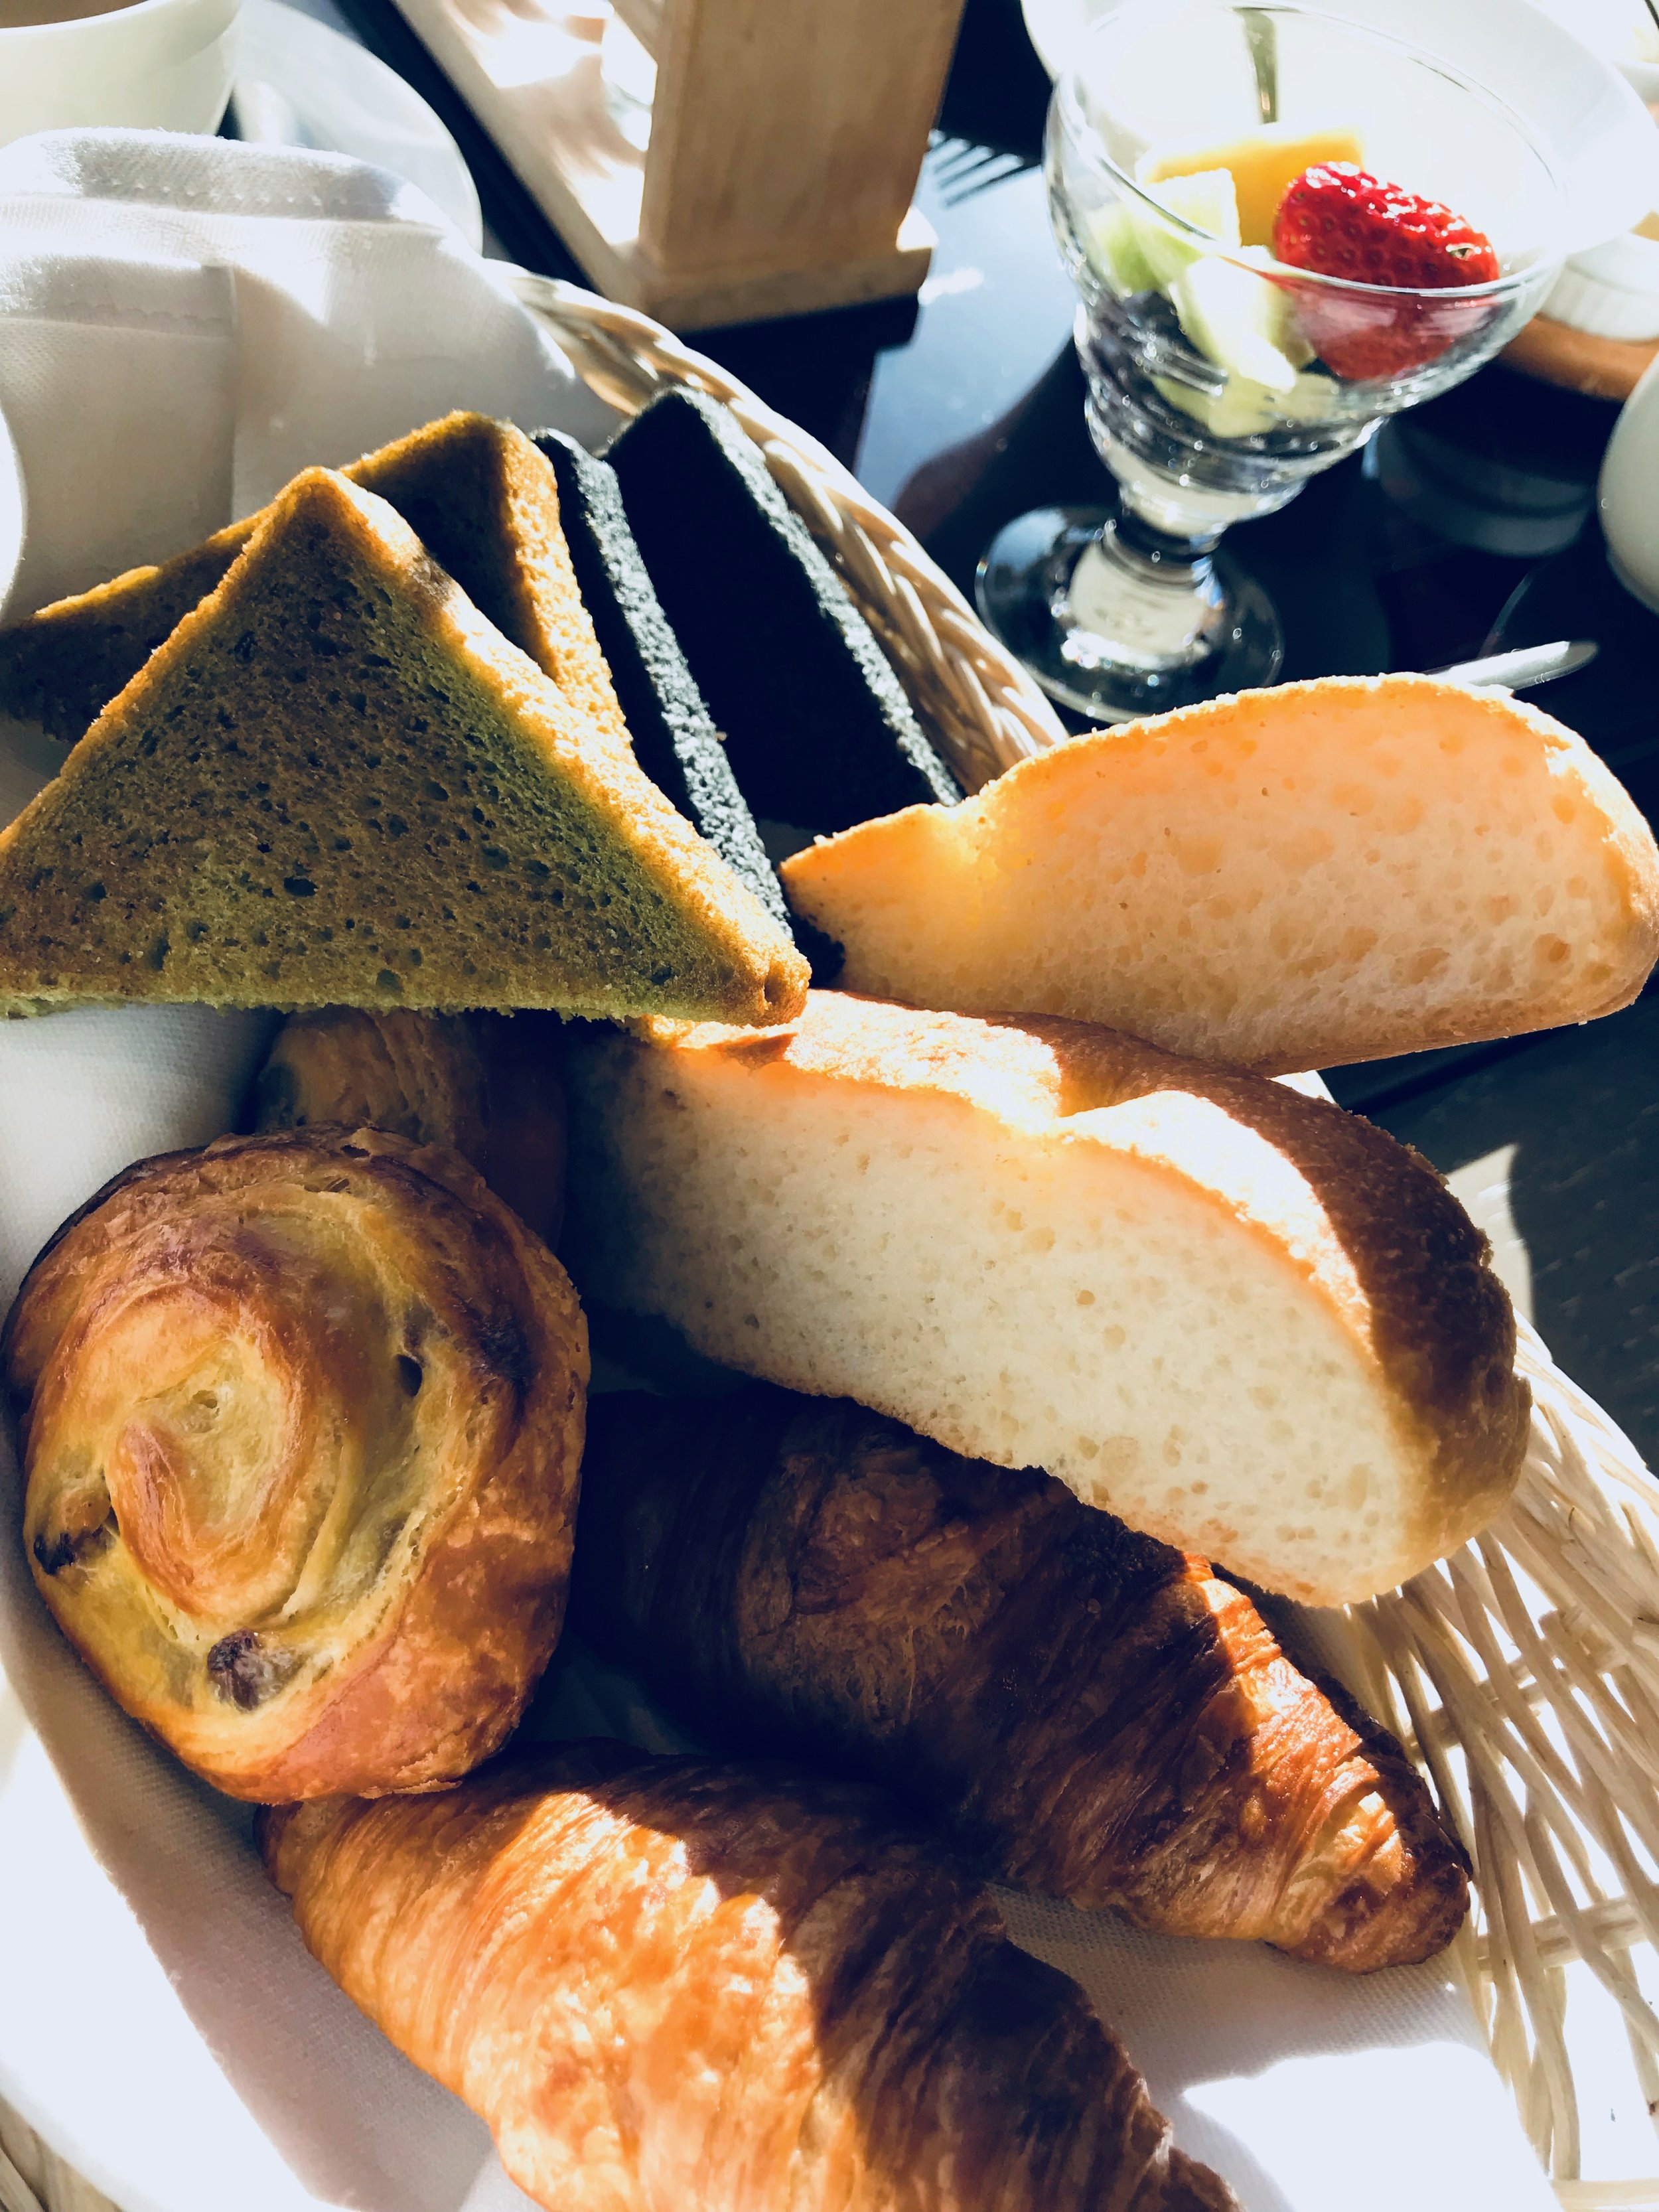 Matcha and squid ink toasts with various pastries and croissants